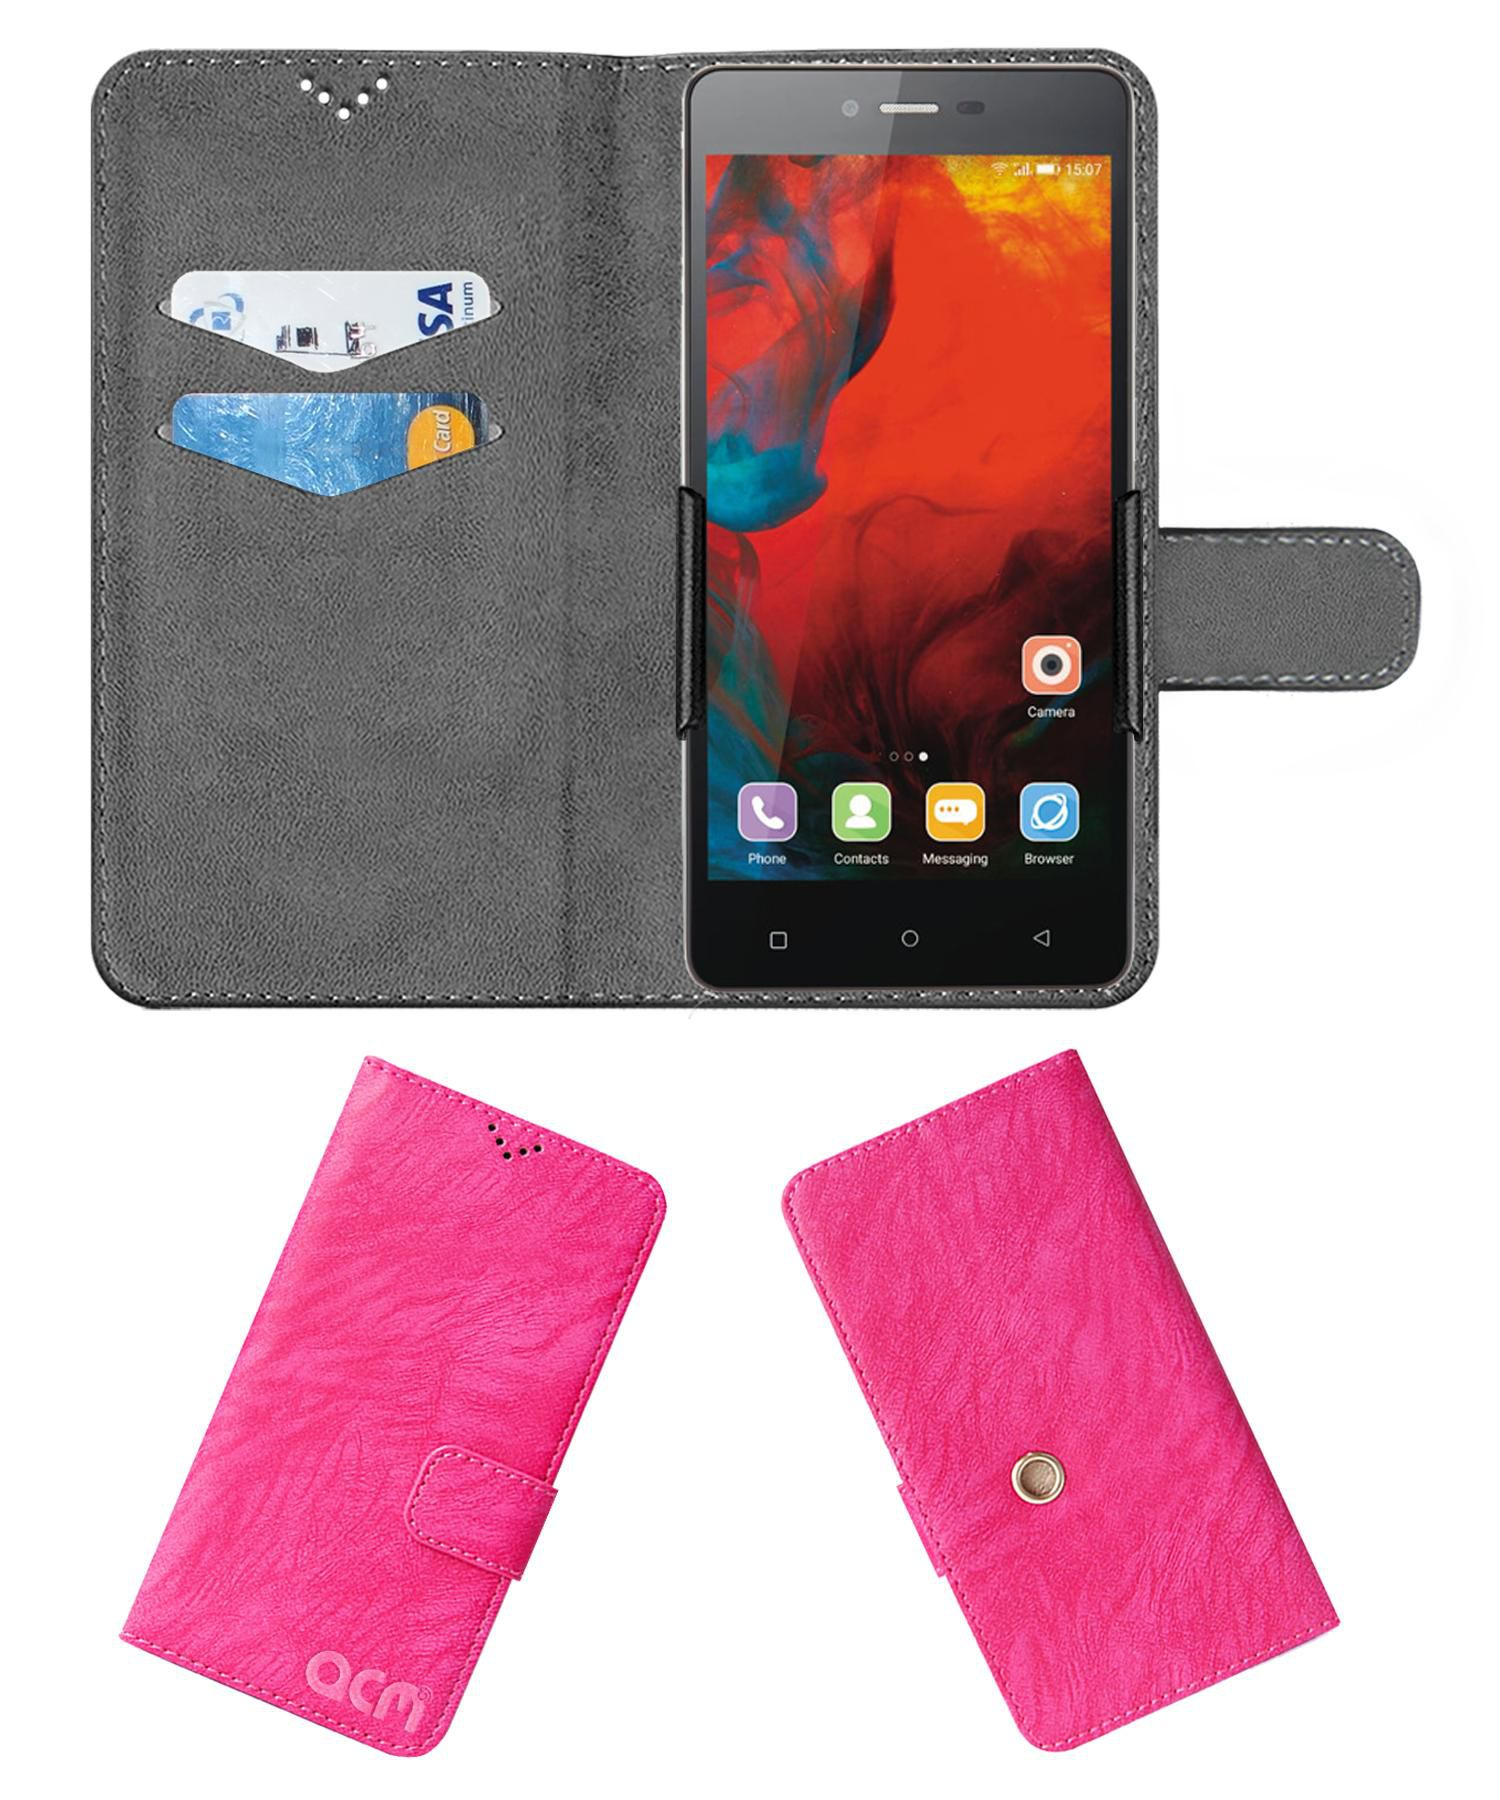 Gionee F103 Flip Cover by ACM - Pink Clip holder to hold your mobile securely